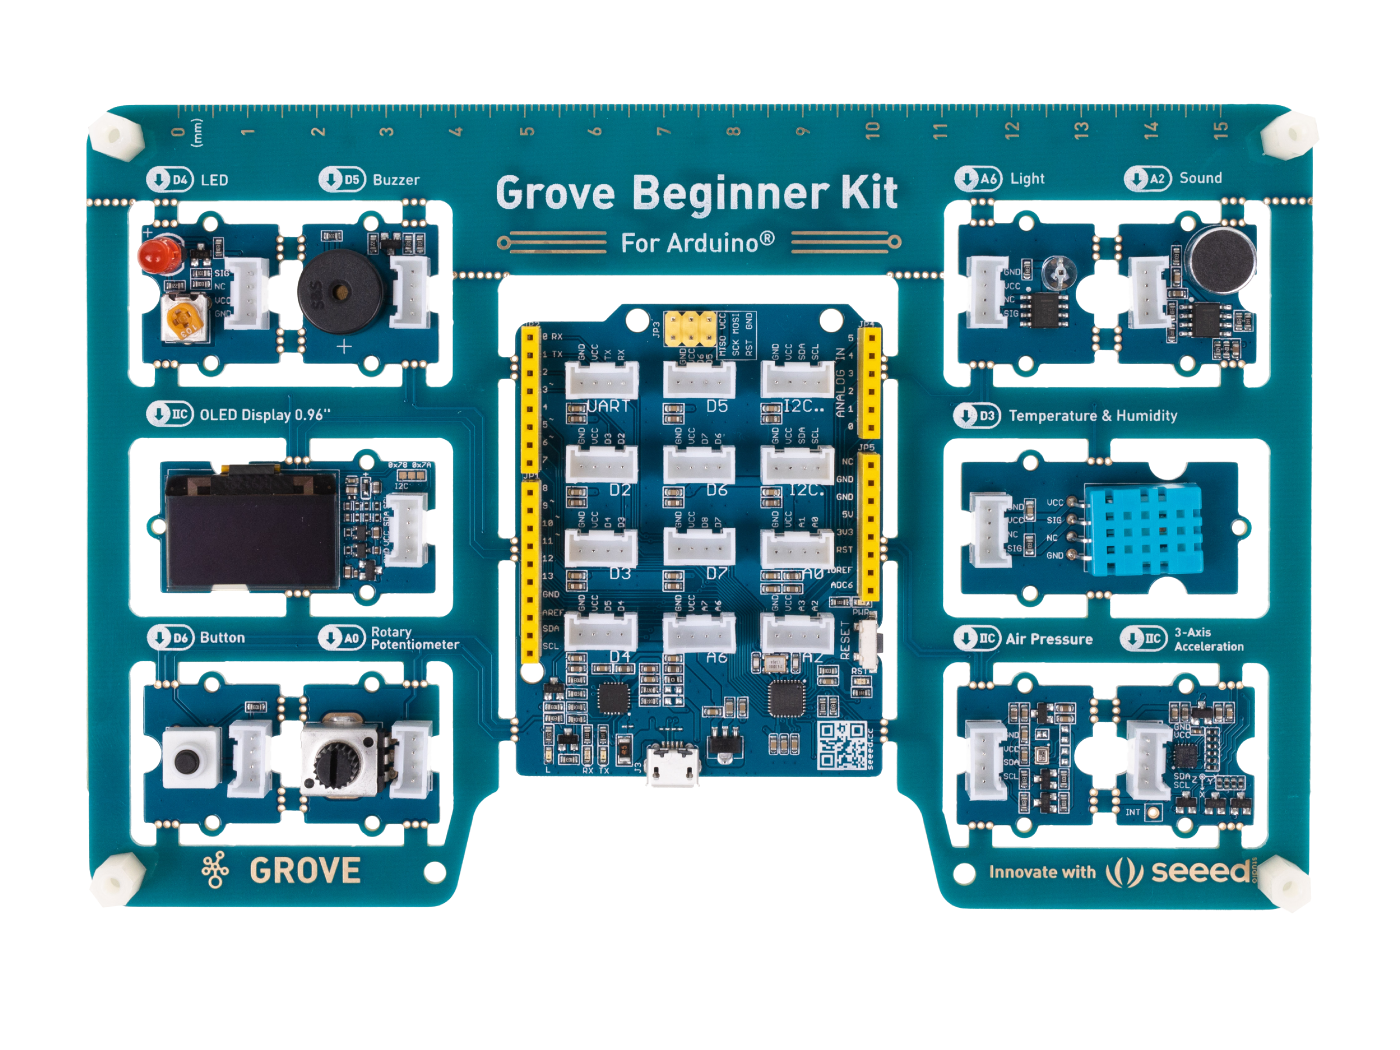 https://blog.rot13.org/2020/12/12/grove-beginer-kit-for-arduino.png